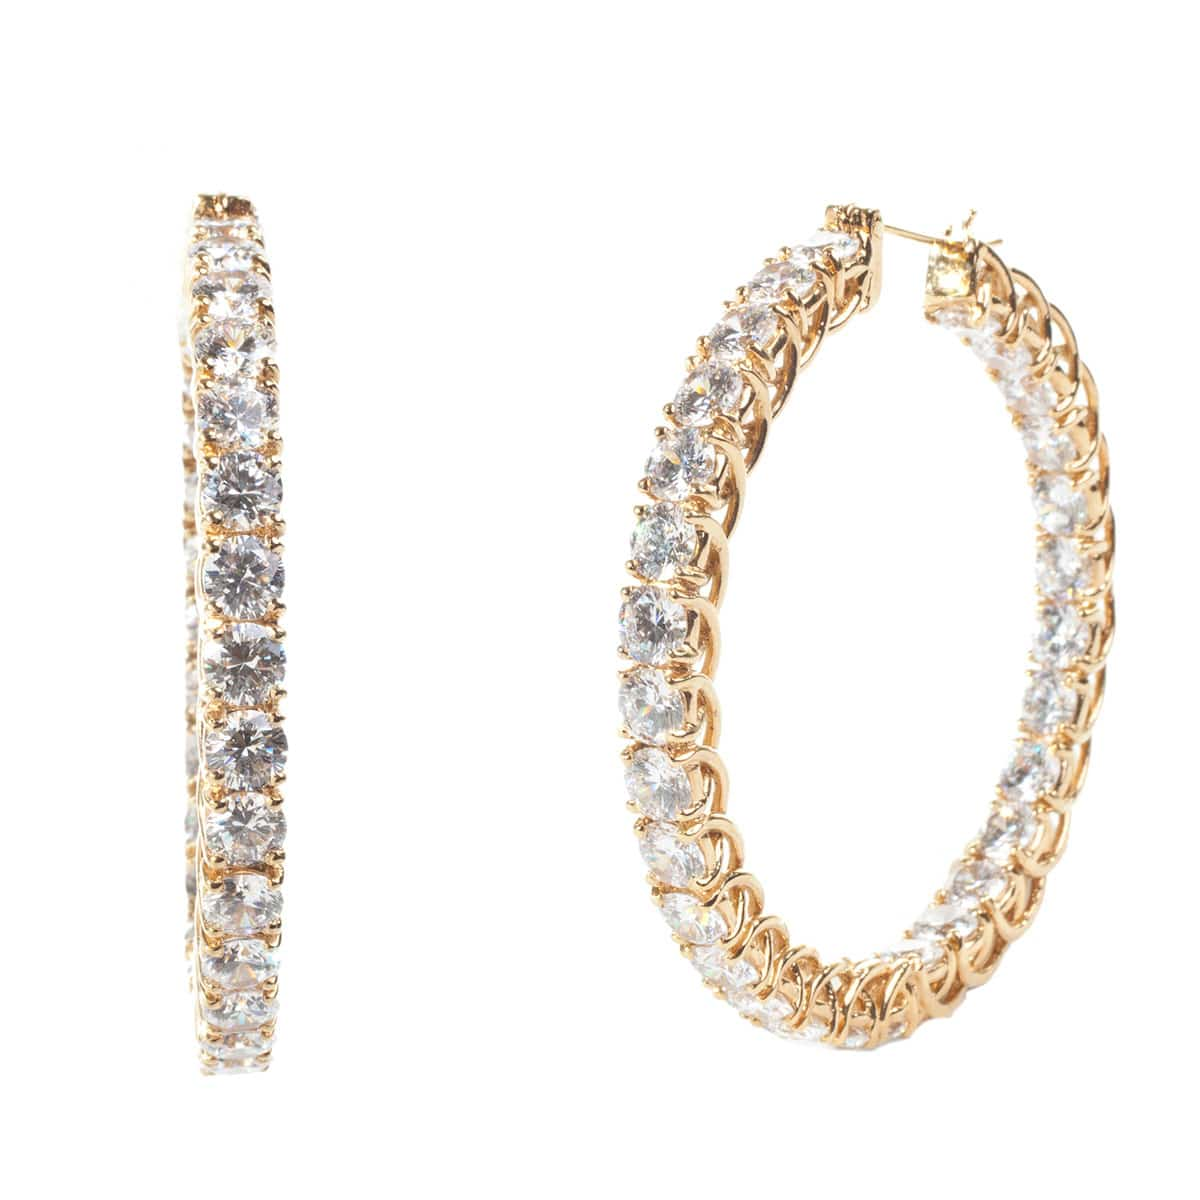 Diamond hoops that reveal diamonds on the inside and outside of the hoops. They look great for the office as well as an evening